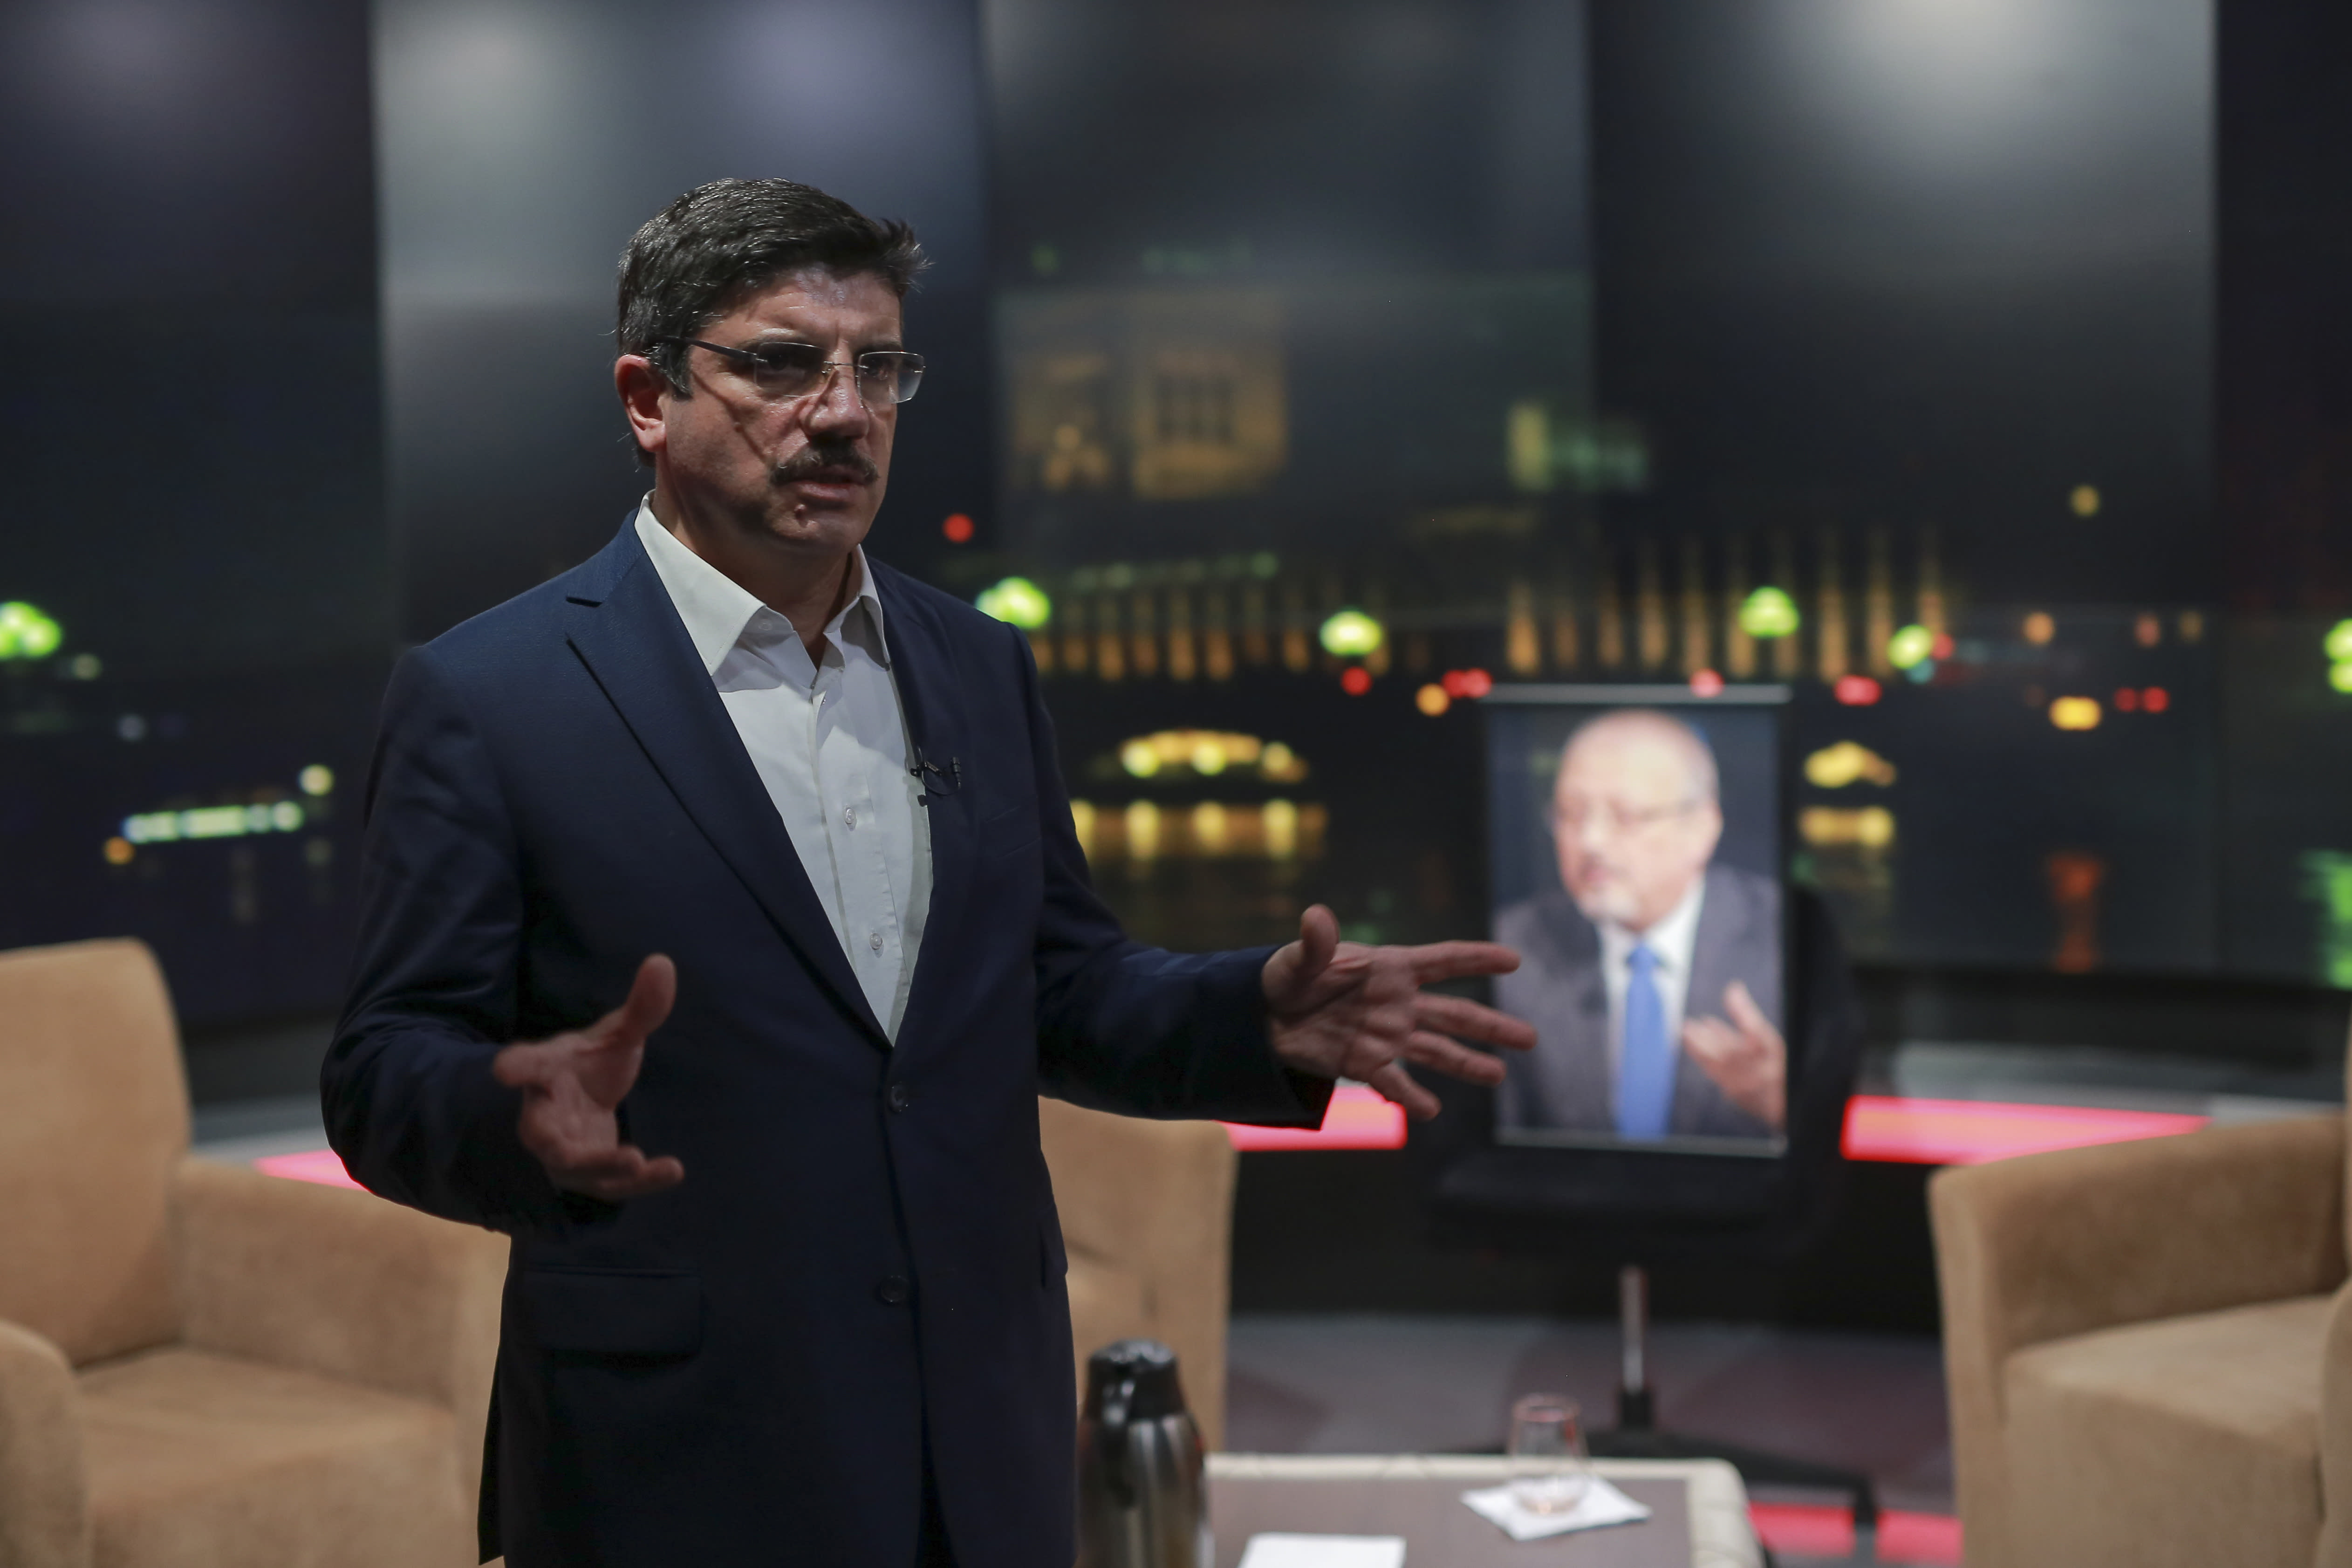 Yasin Aktay, an advisor to Turkey's President Recep Tayyip Erdogan and a good friend of Jamal Khashoggi, speaks to The Associated Press next to an empty chair with a picture of Saudi writer Jamal Khashoggi placed on it, before a live television program for London-based TV station al-Hewar, in Istanbul, late Thursday, Oct. 11, 2018. Khashoggi was supposed to appear on the show. The TV presenter Azzam Tamimi, a prominent Palestinian and a good friend of Khashoggi, told The Associated Press that the program was planned to discuss his new projects, his books and other issues. (AP Photo/Mucahid Yapici)